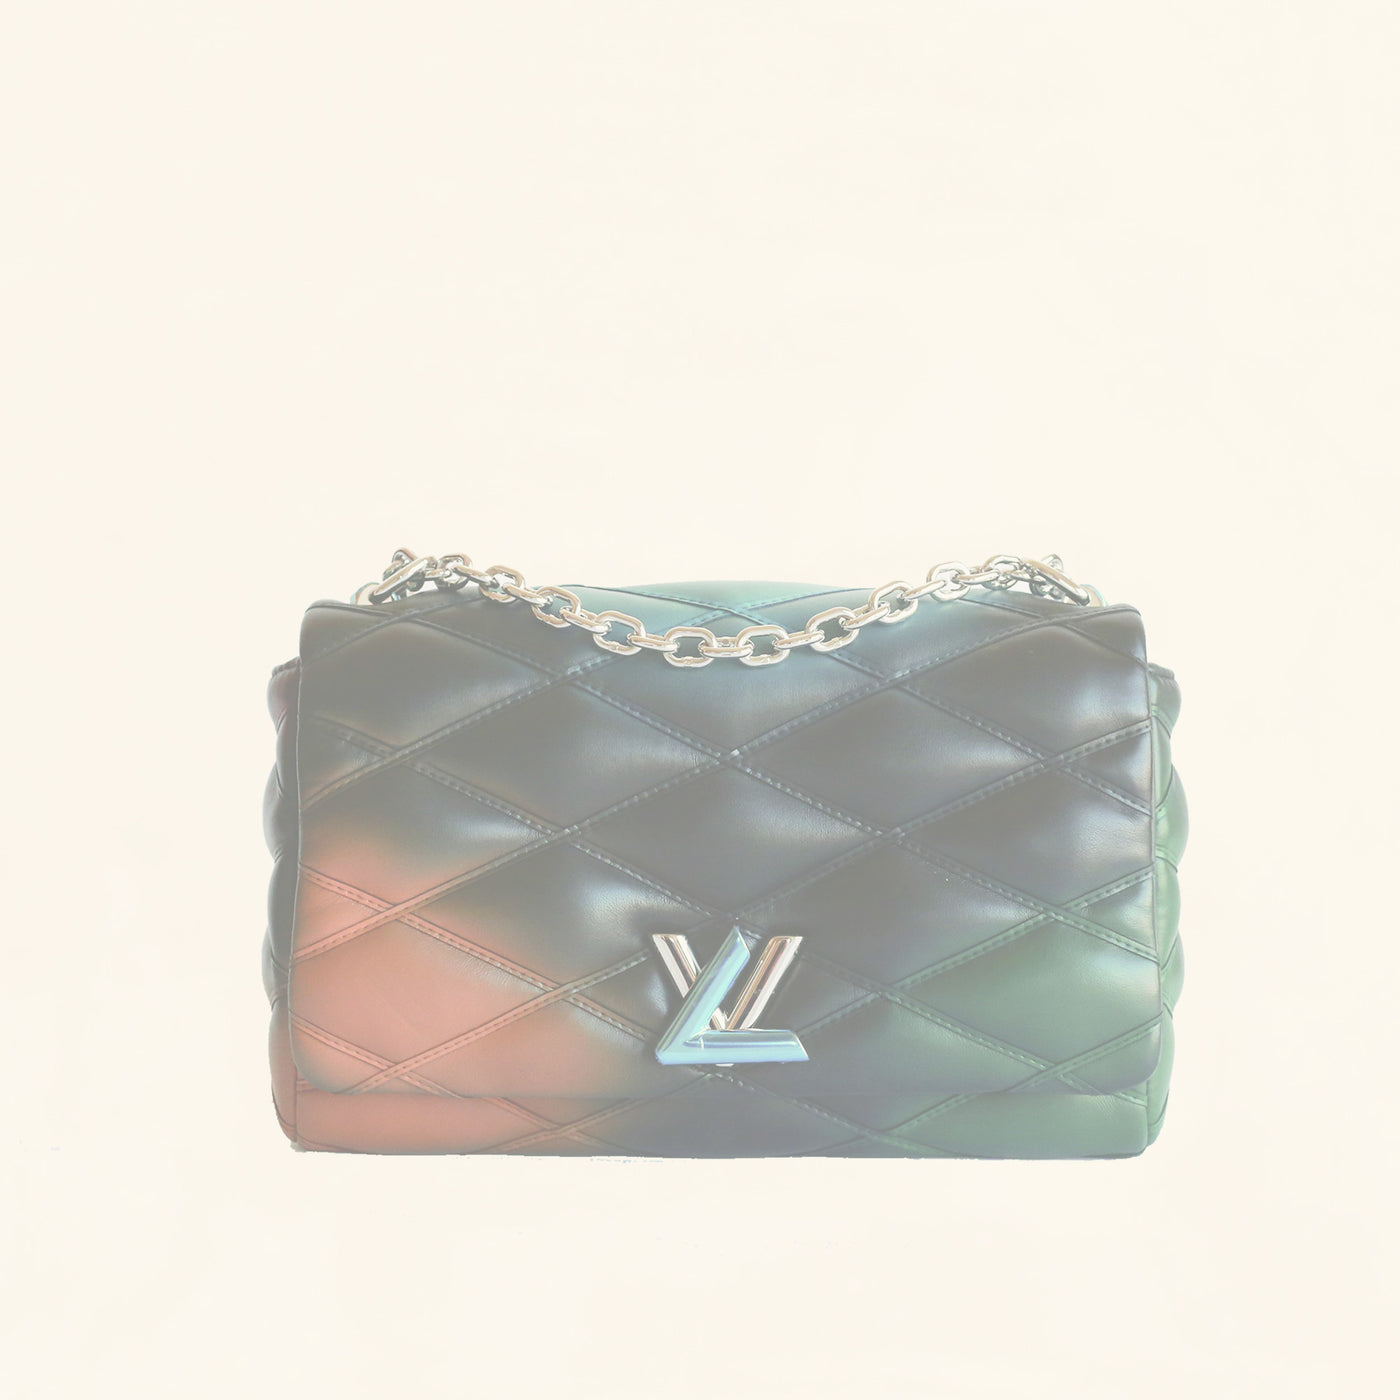 d3caaf5ad5a0 Louis Vuitton